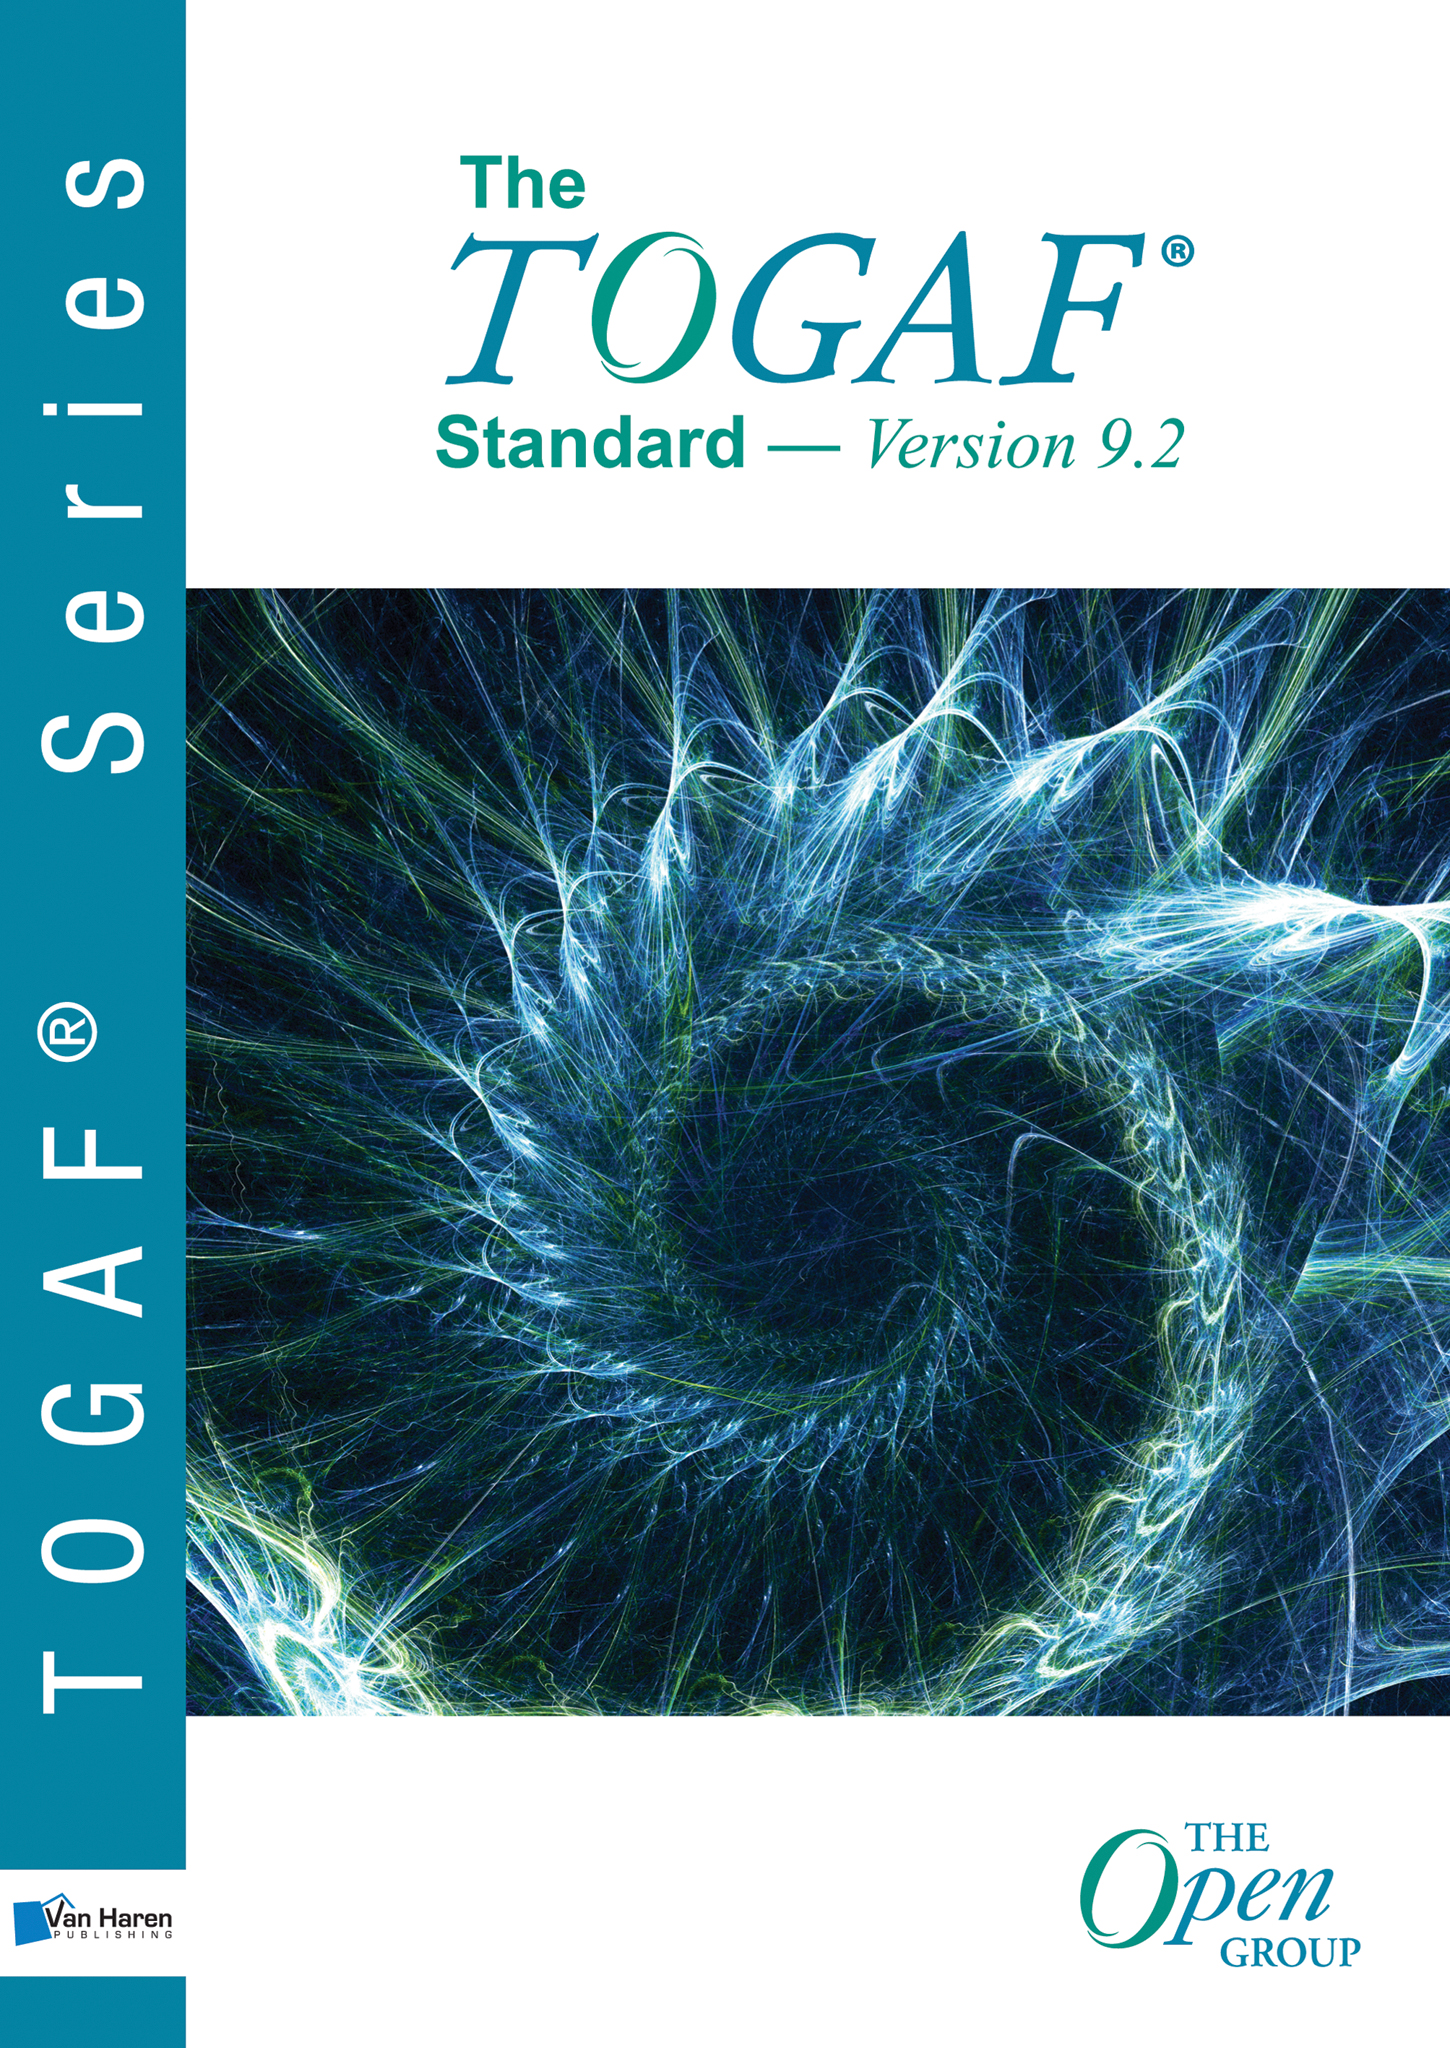 The TOGAF® Standard, Version 9.2 in 3 minutes